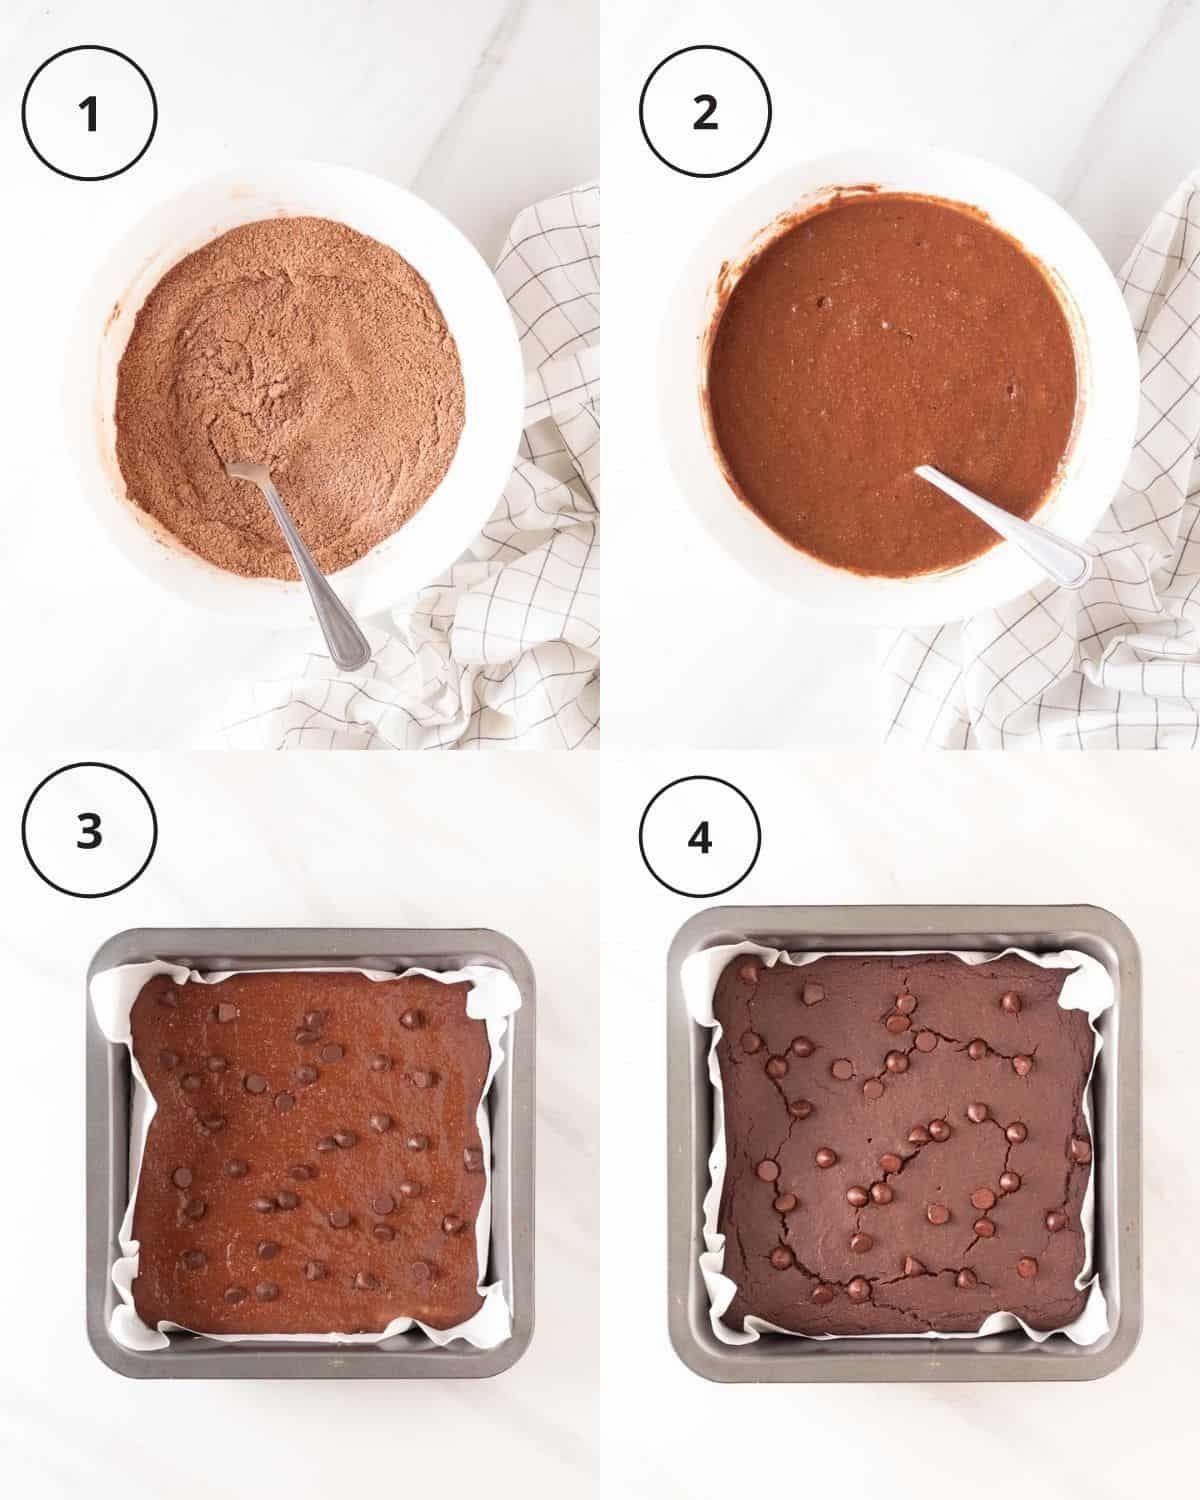 A 4 picture collage of process of making brownies, which shows mixing dry ingredients, adding in wet ingredients, batter in a square tray and brownies in tray after baking.